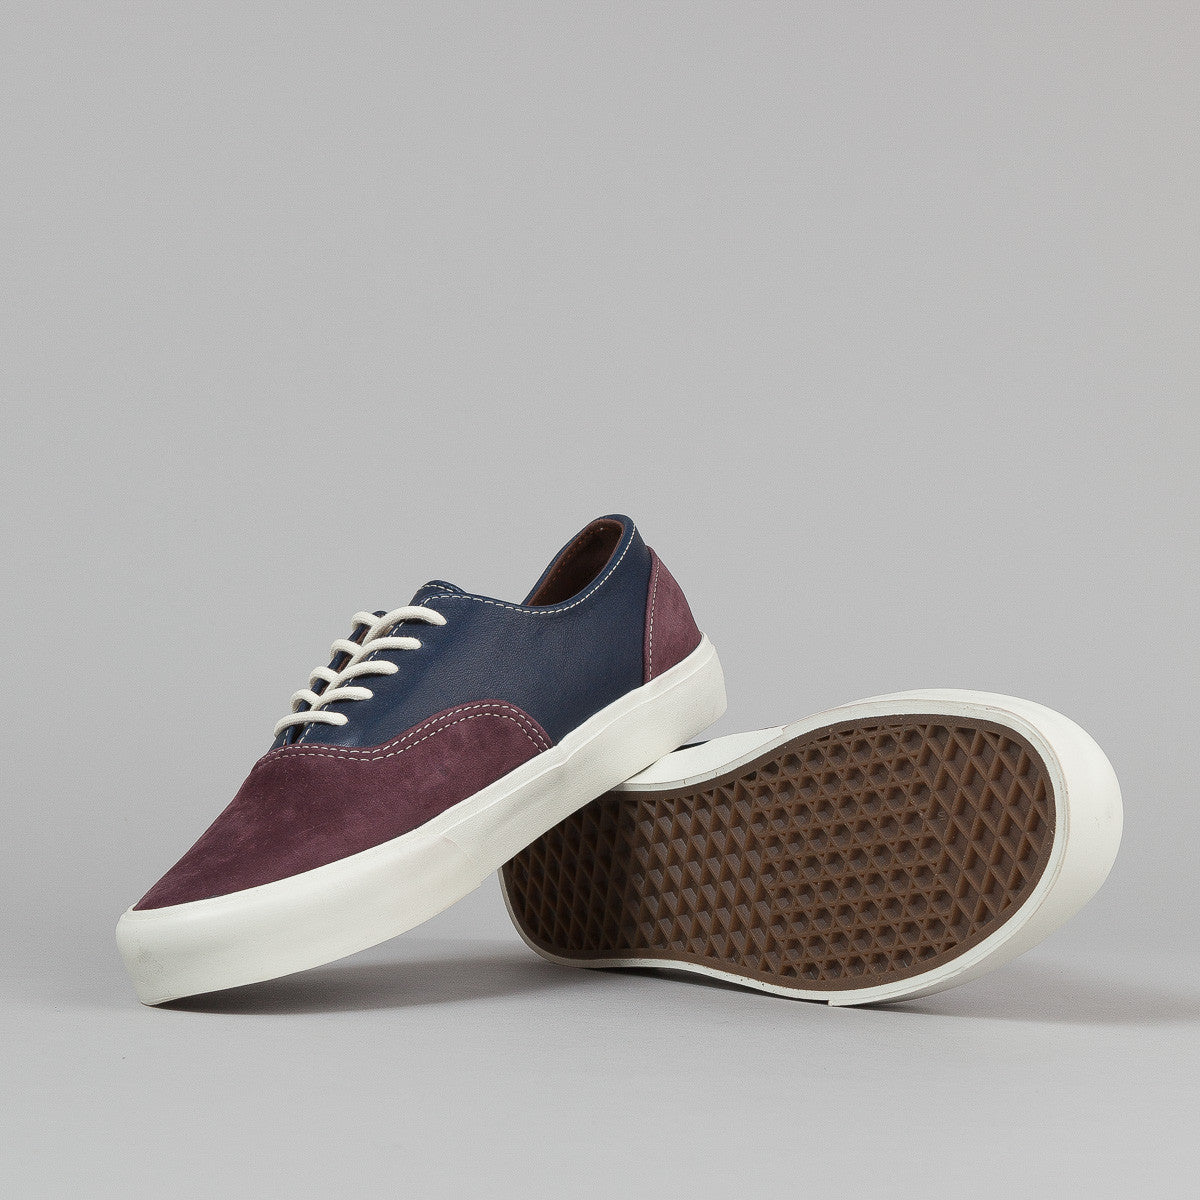 Vans Era Decon CA Shoes - (2 Tone) Winetasting / Dress Blues